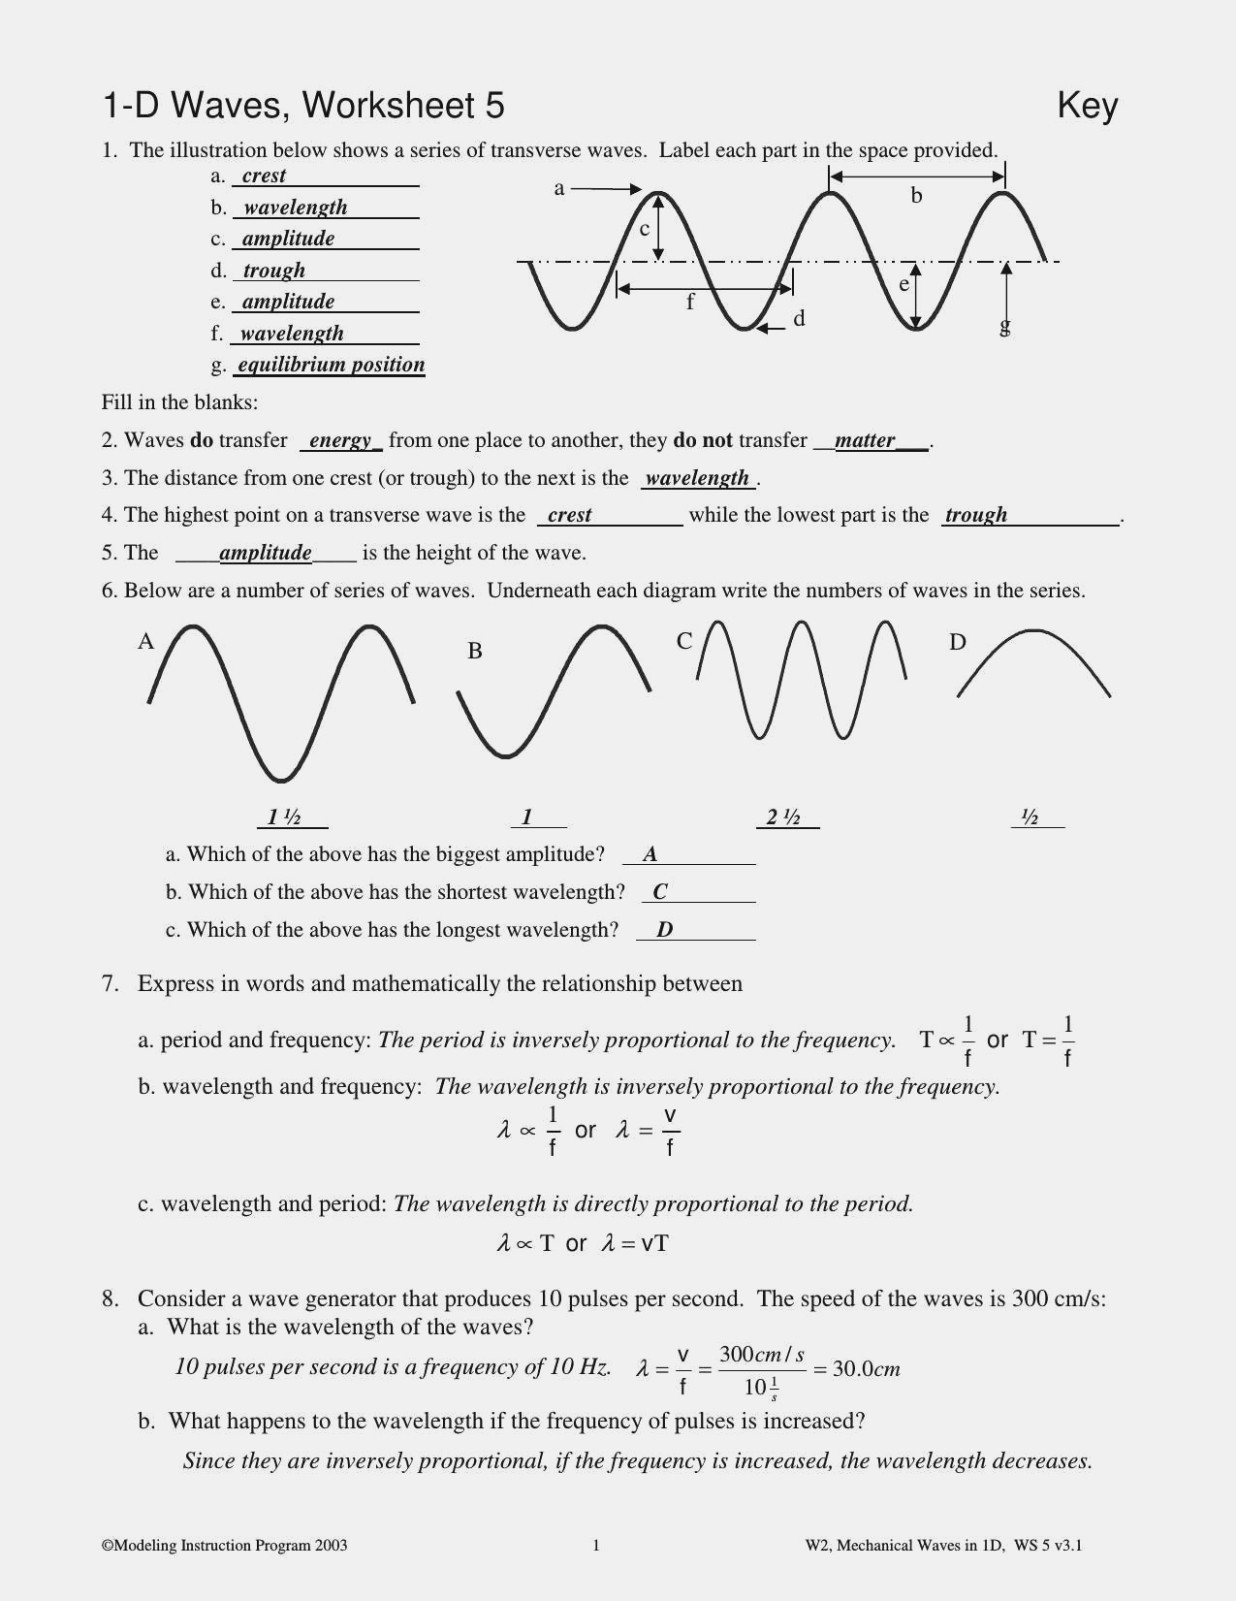 31 Electromagnetic Waves Worksheet Answers